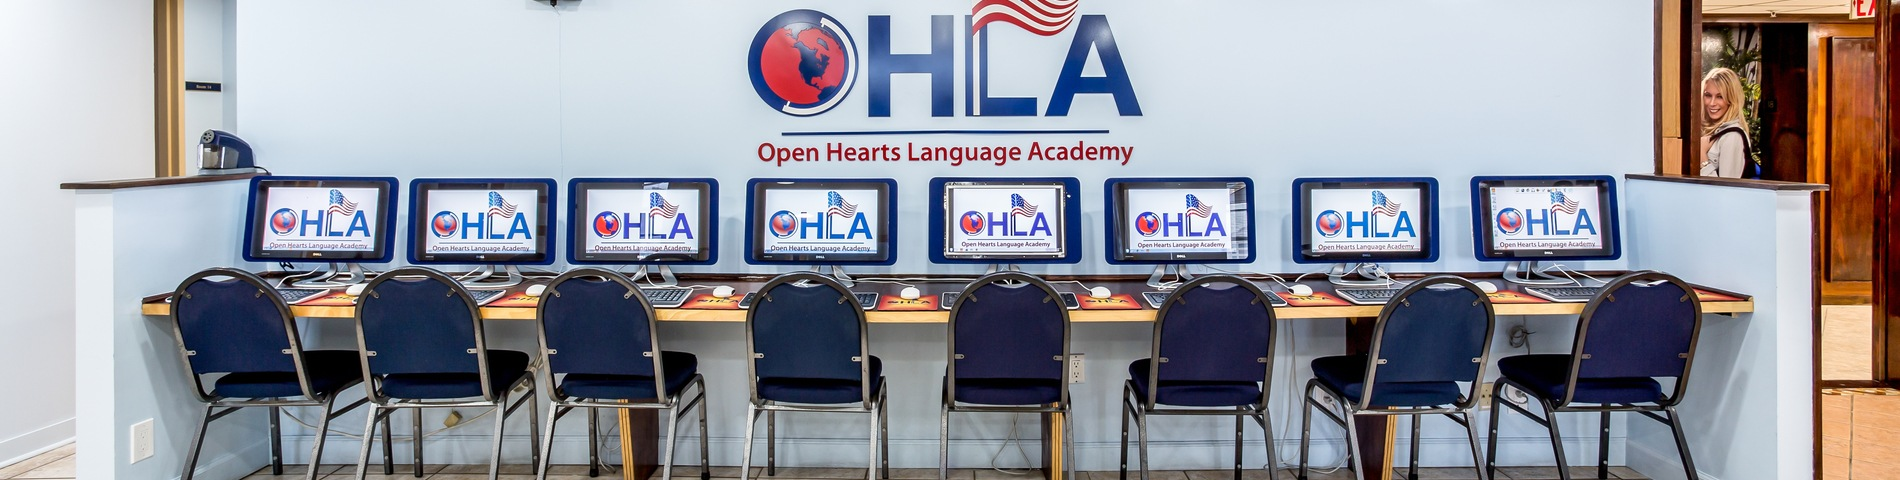 Open Hearts Language Academy picture 4